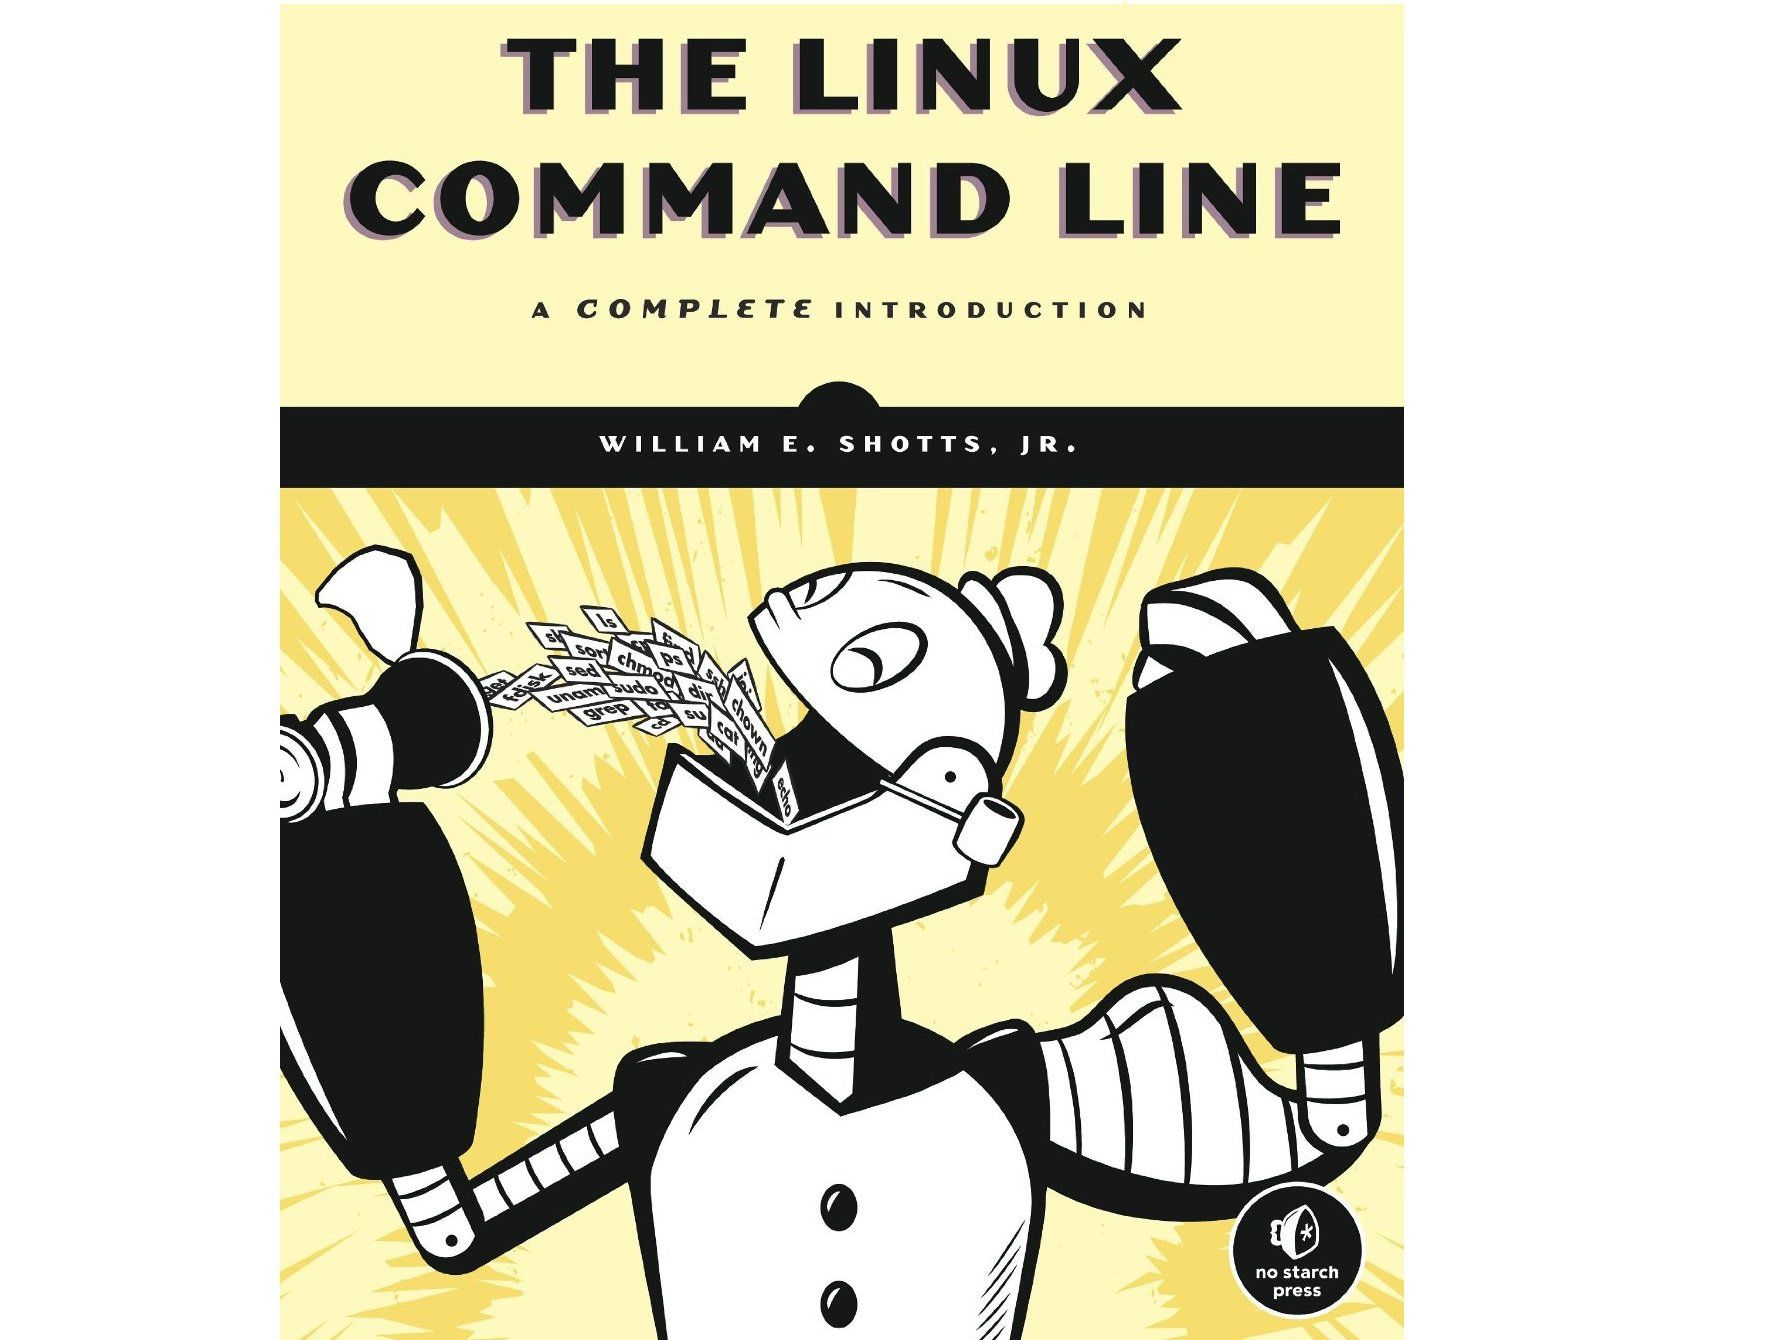 the linux command line ebook free download